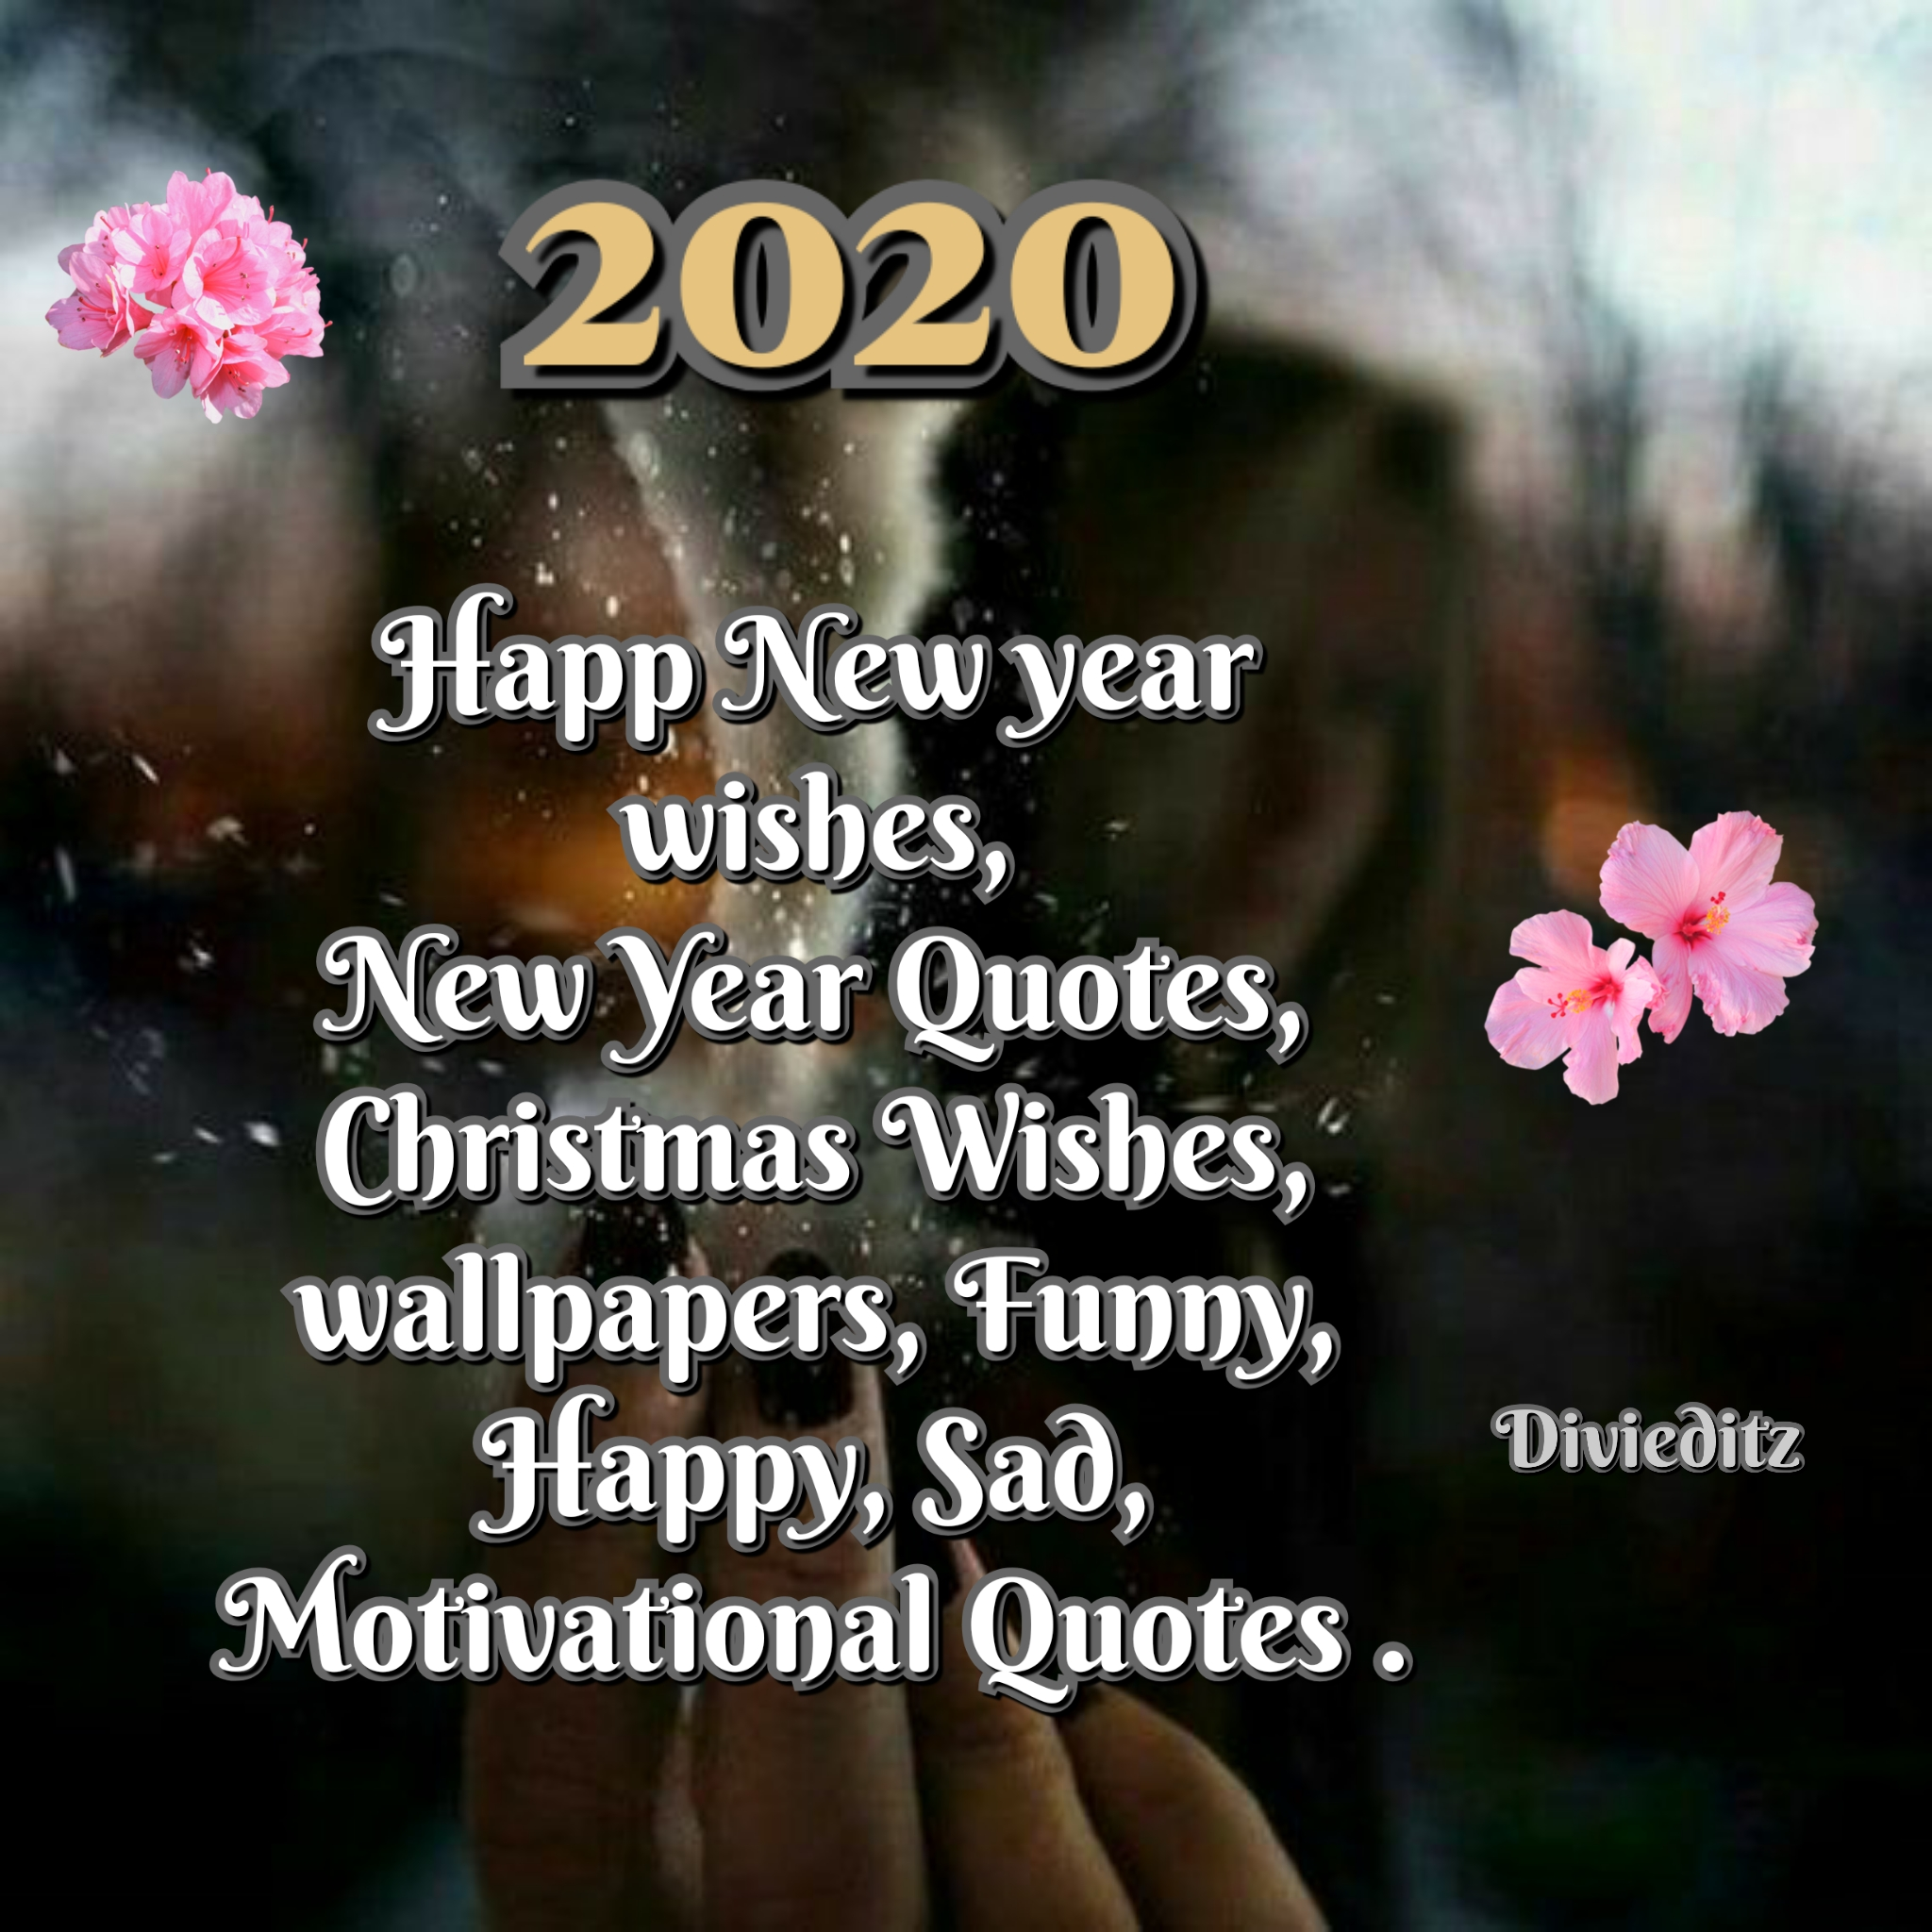 2020 New Year Wishes, Quotes, Wallpapers, Funny, Happy, Sad Quotes